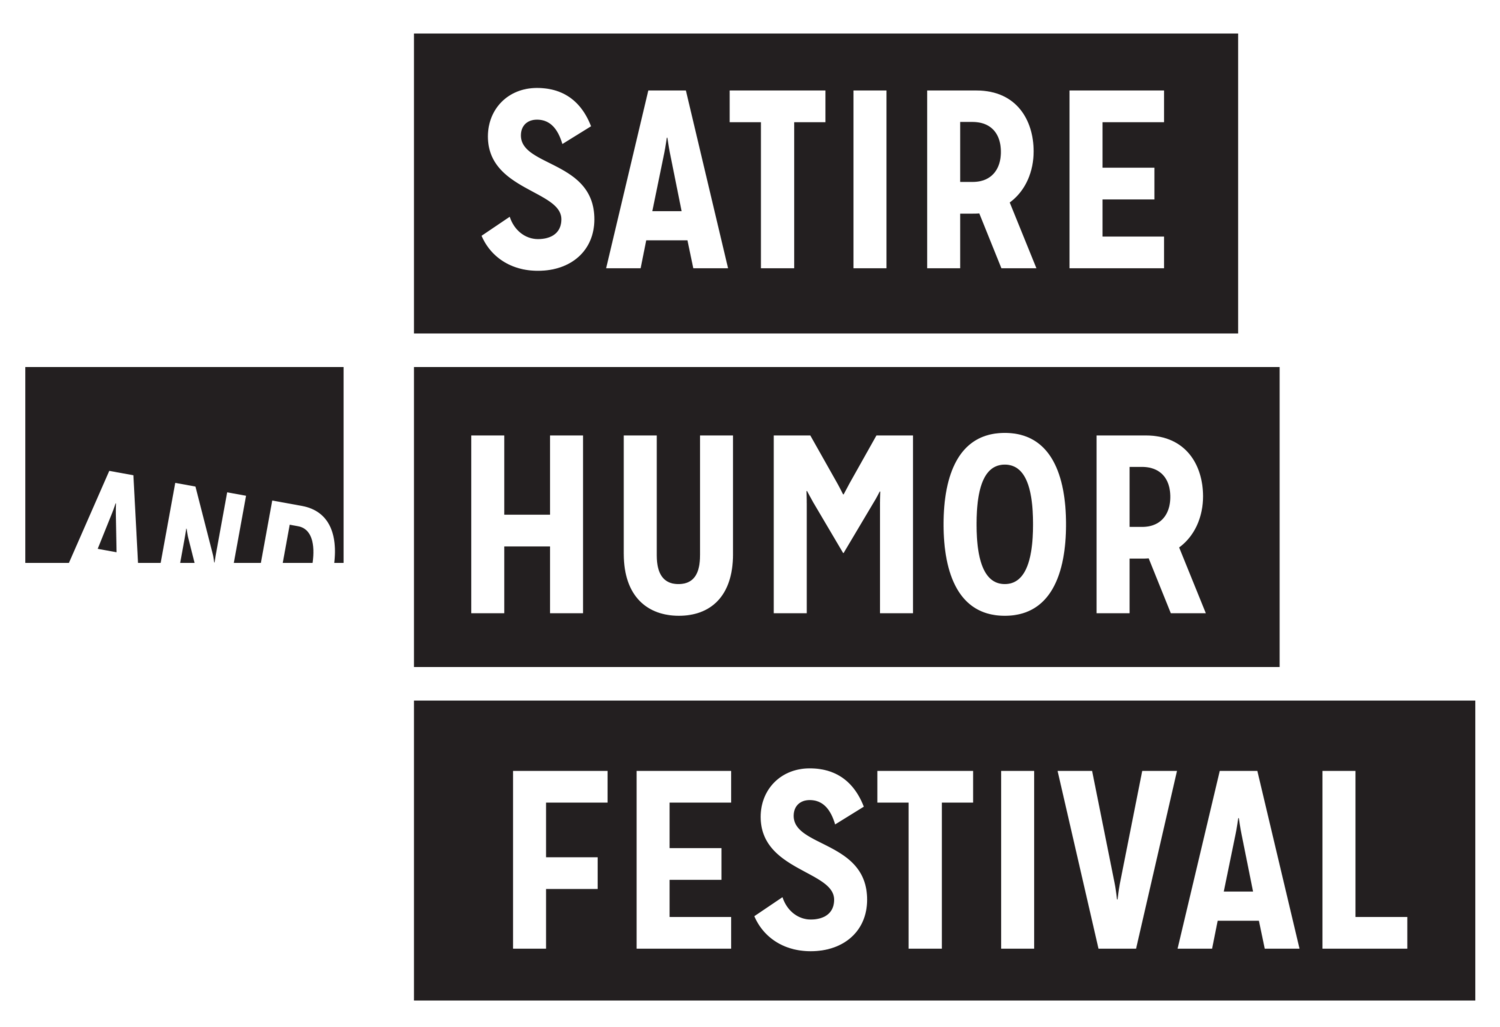 The Satire and Humor Festival